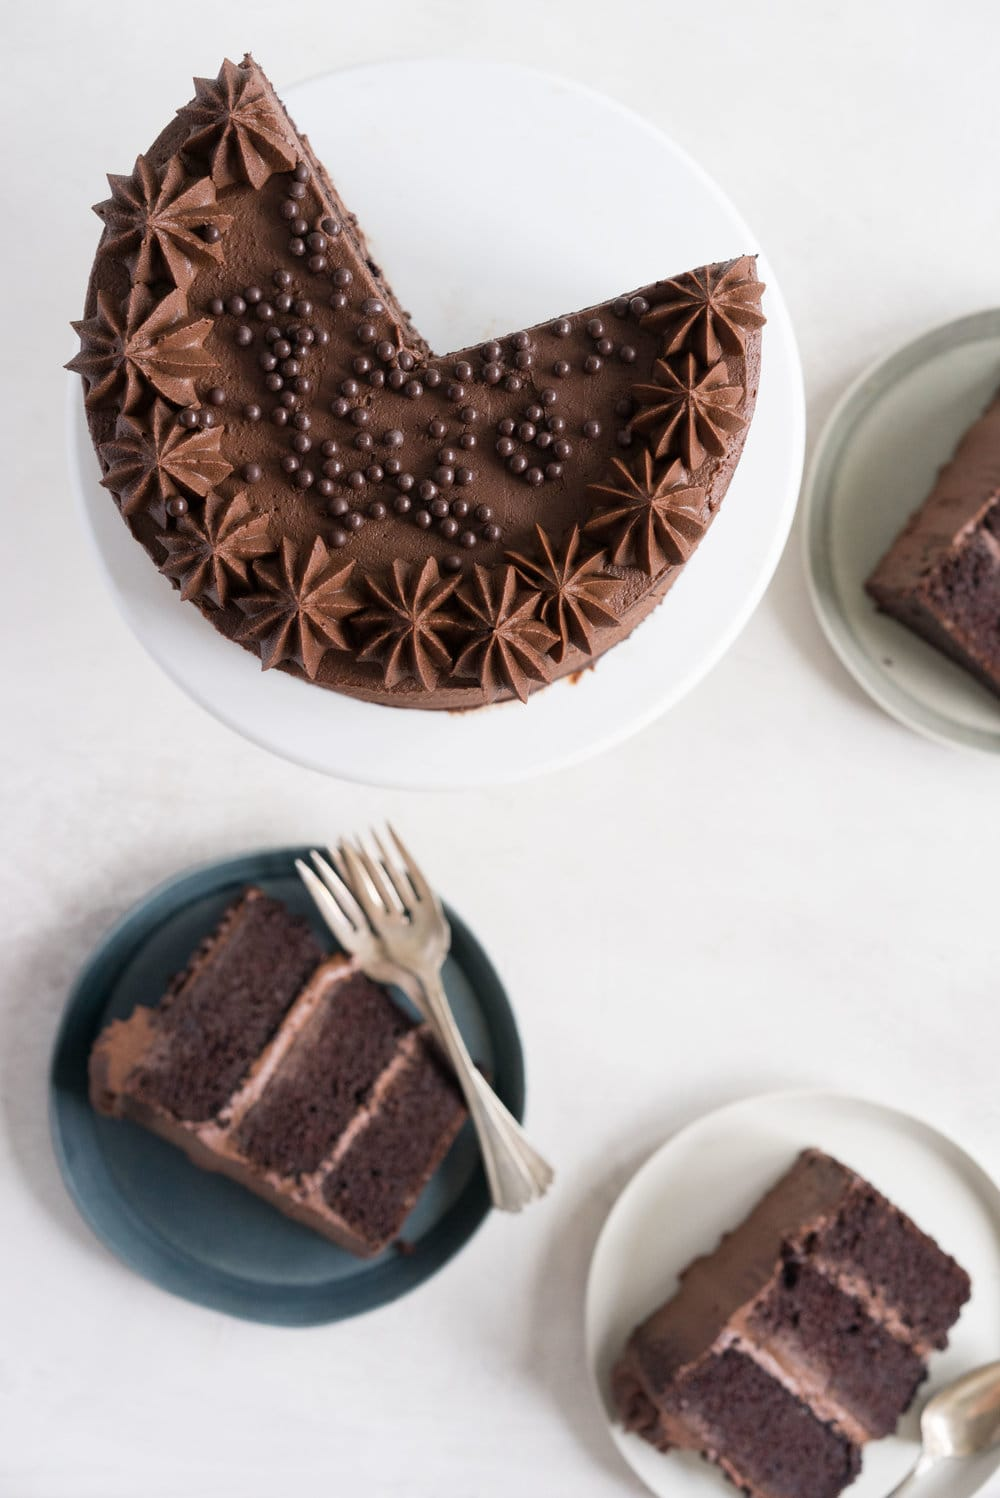 One Bowl Devil's food Layer Cake with Milk Chocolate Frosting - from the new Bravetart book! Dark chocolate cake is prepared in one bowl, baked into perfect layers, then frosted with a smooth, creamy milk chocolate frosting. The ultimate chocolate lover's cake. #devilsfood #layercake #chocolatecake #bravetart #milkchocolate